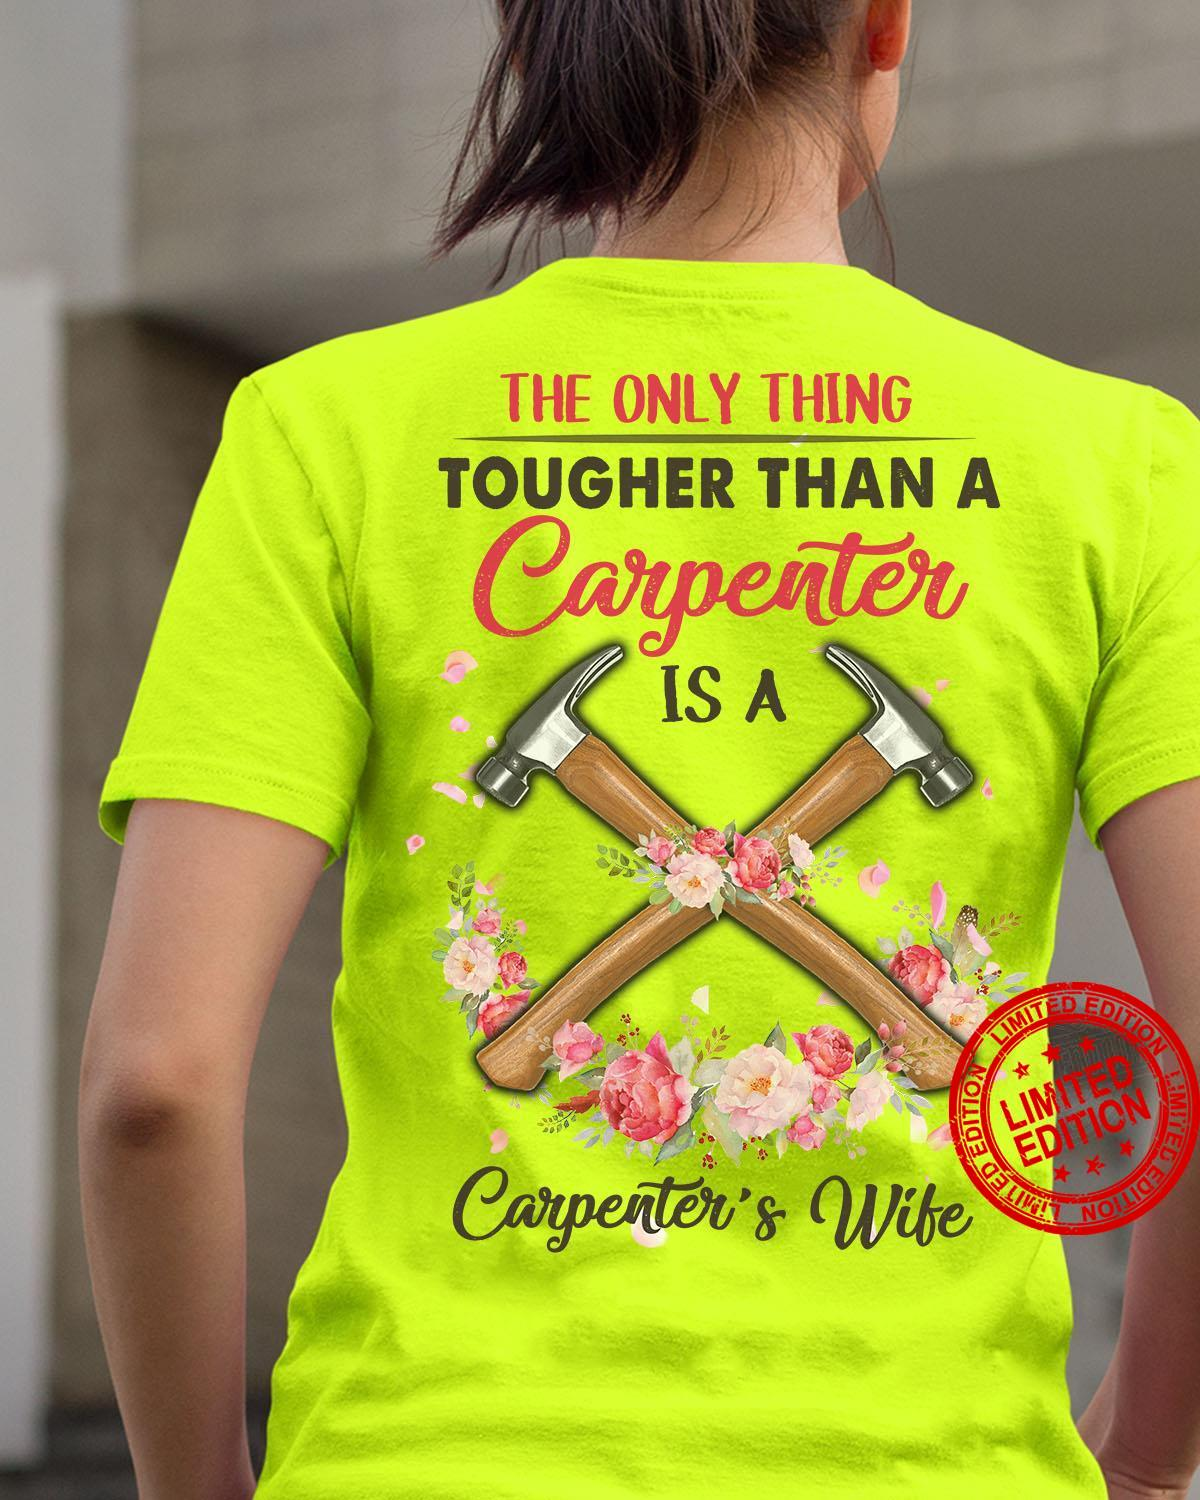 The Only Thing Tougher Than A Carpenter Is A Carpenter's Wife Shirt